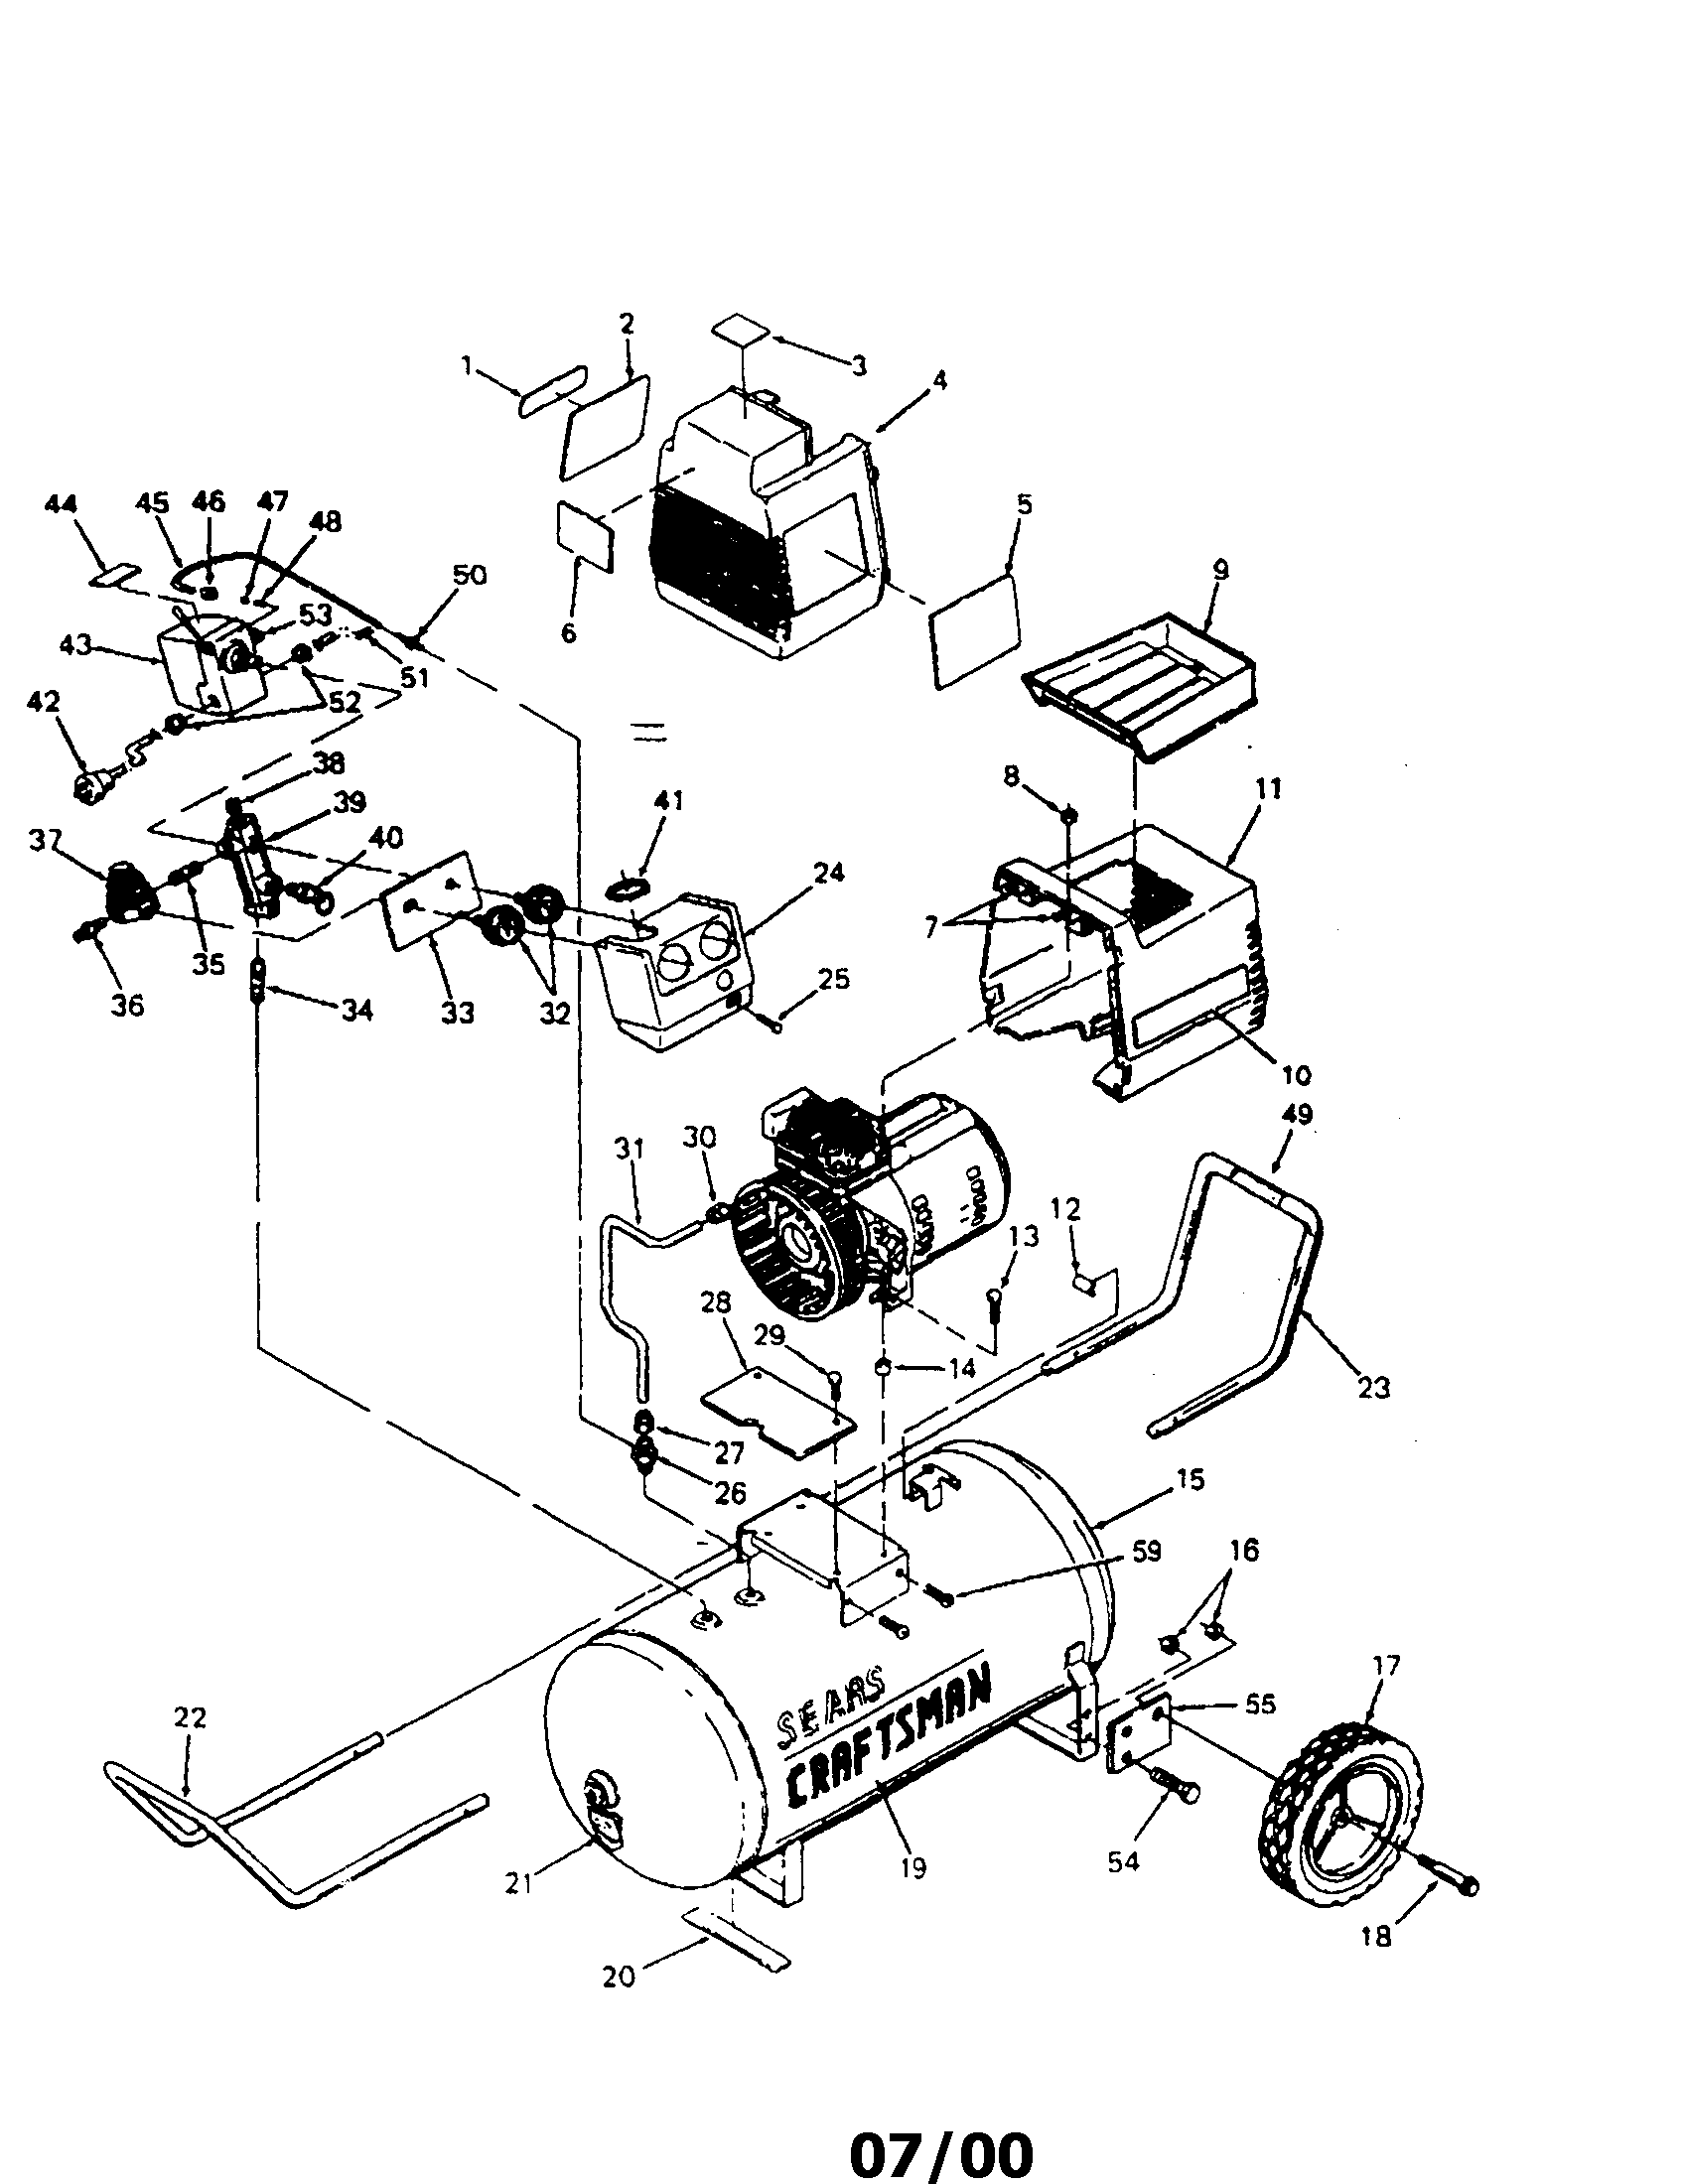 tank pressure switch regulator diagram and parts list for craftsman trinary pressure switch wiring diagram pressure switch wire diagram [ 1696 x 2200 Pixel ]